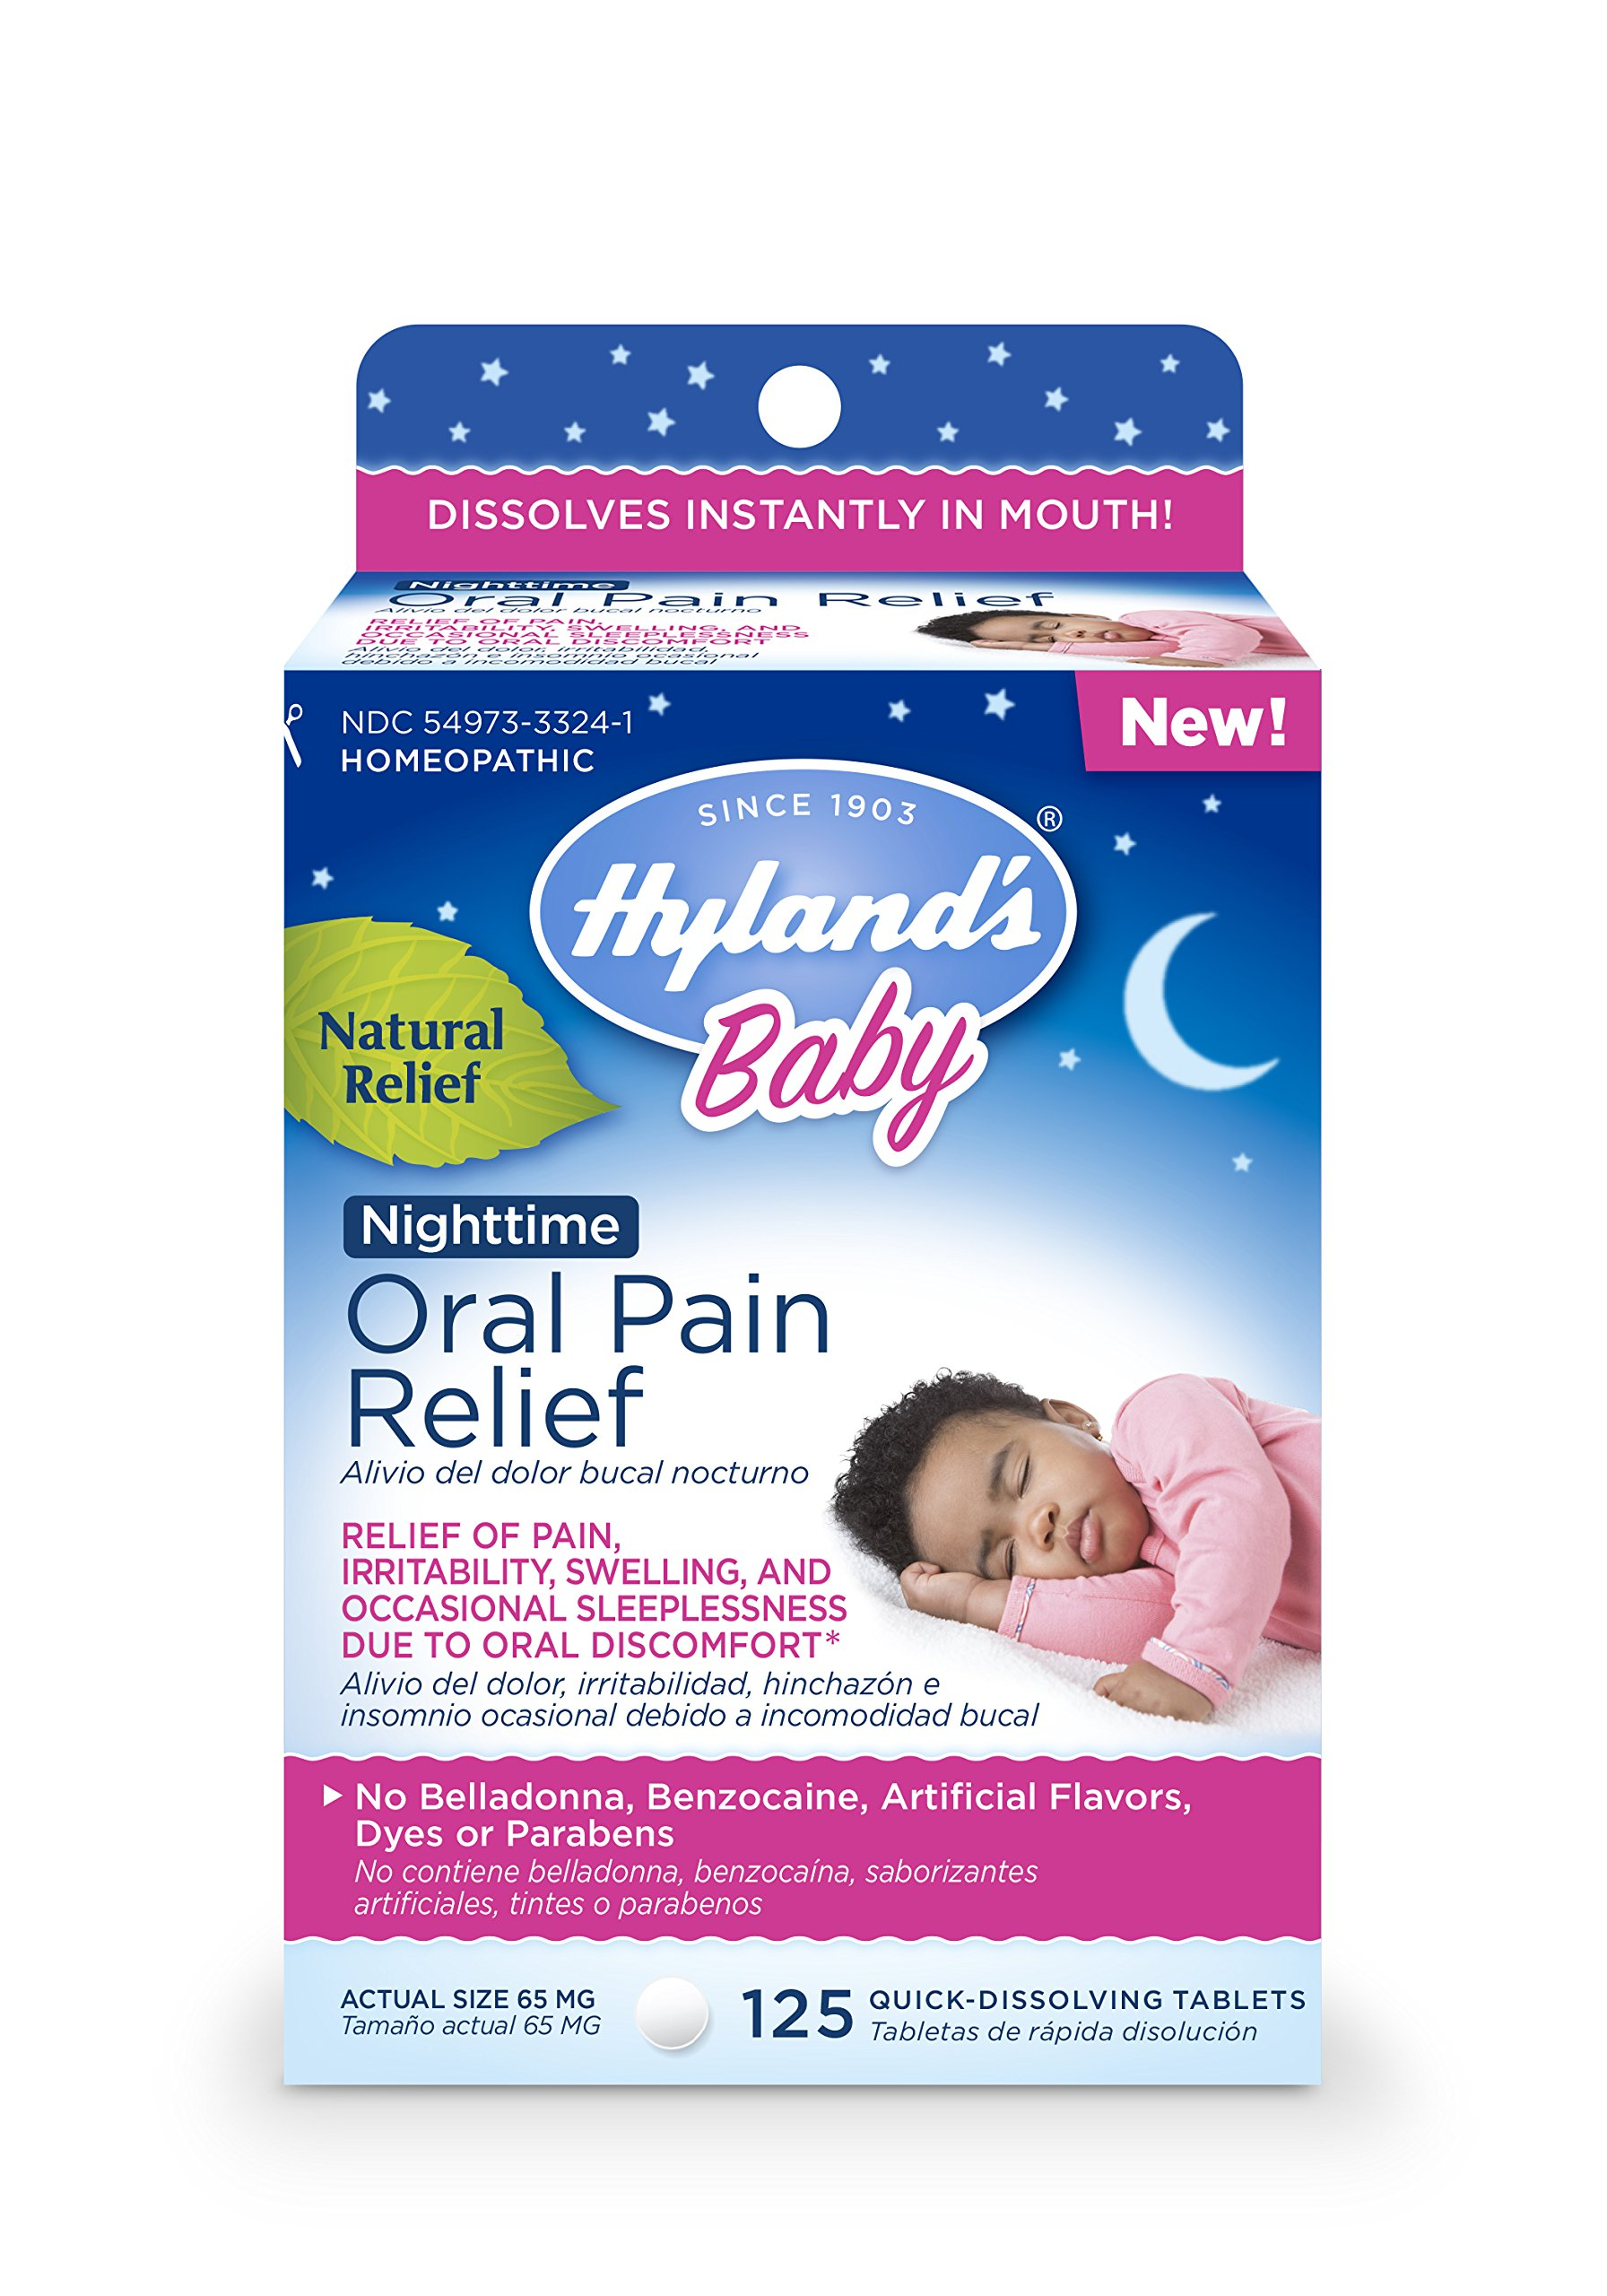 Nighttime Oral Care QAs recommend